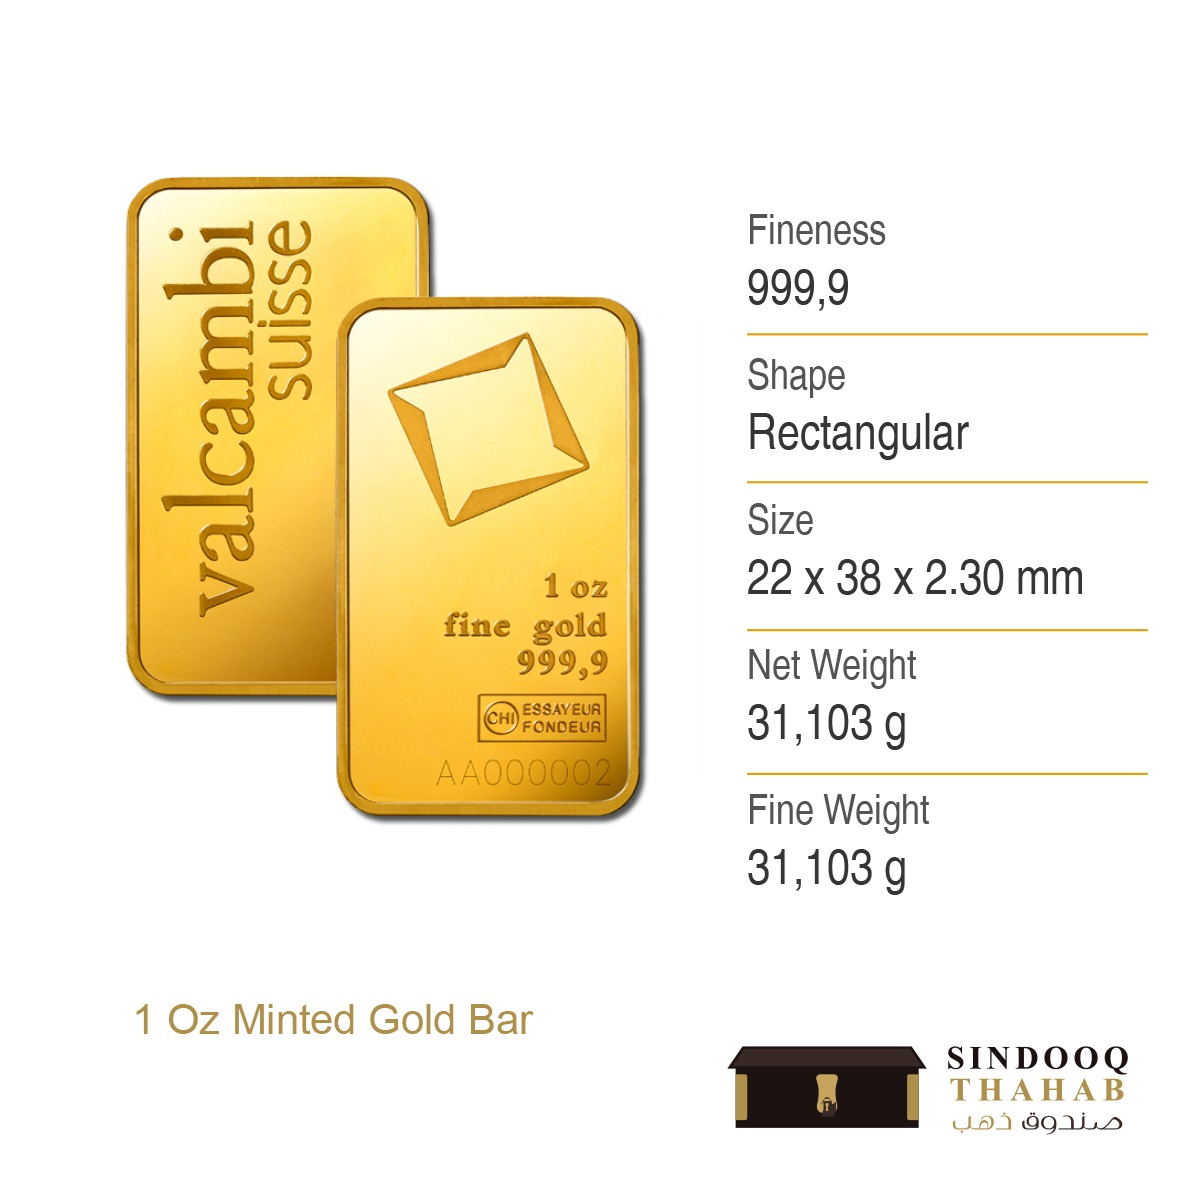 1 oz Minted Gold Bar